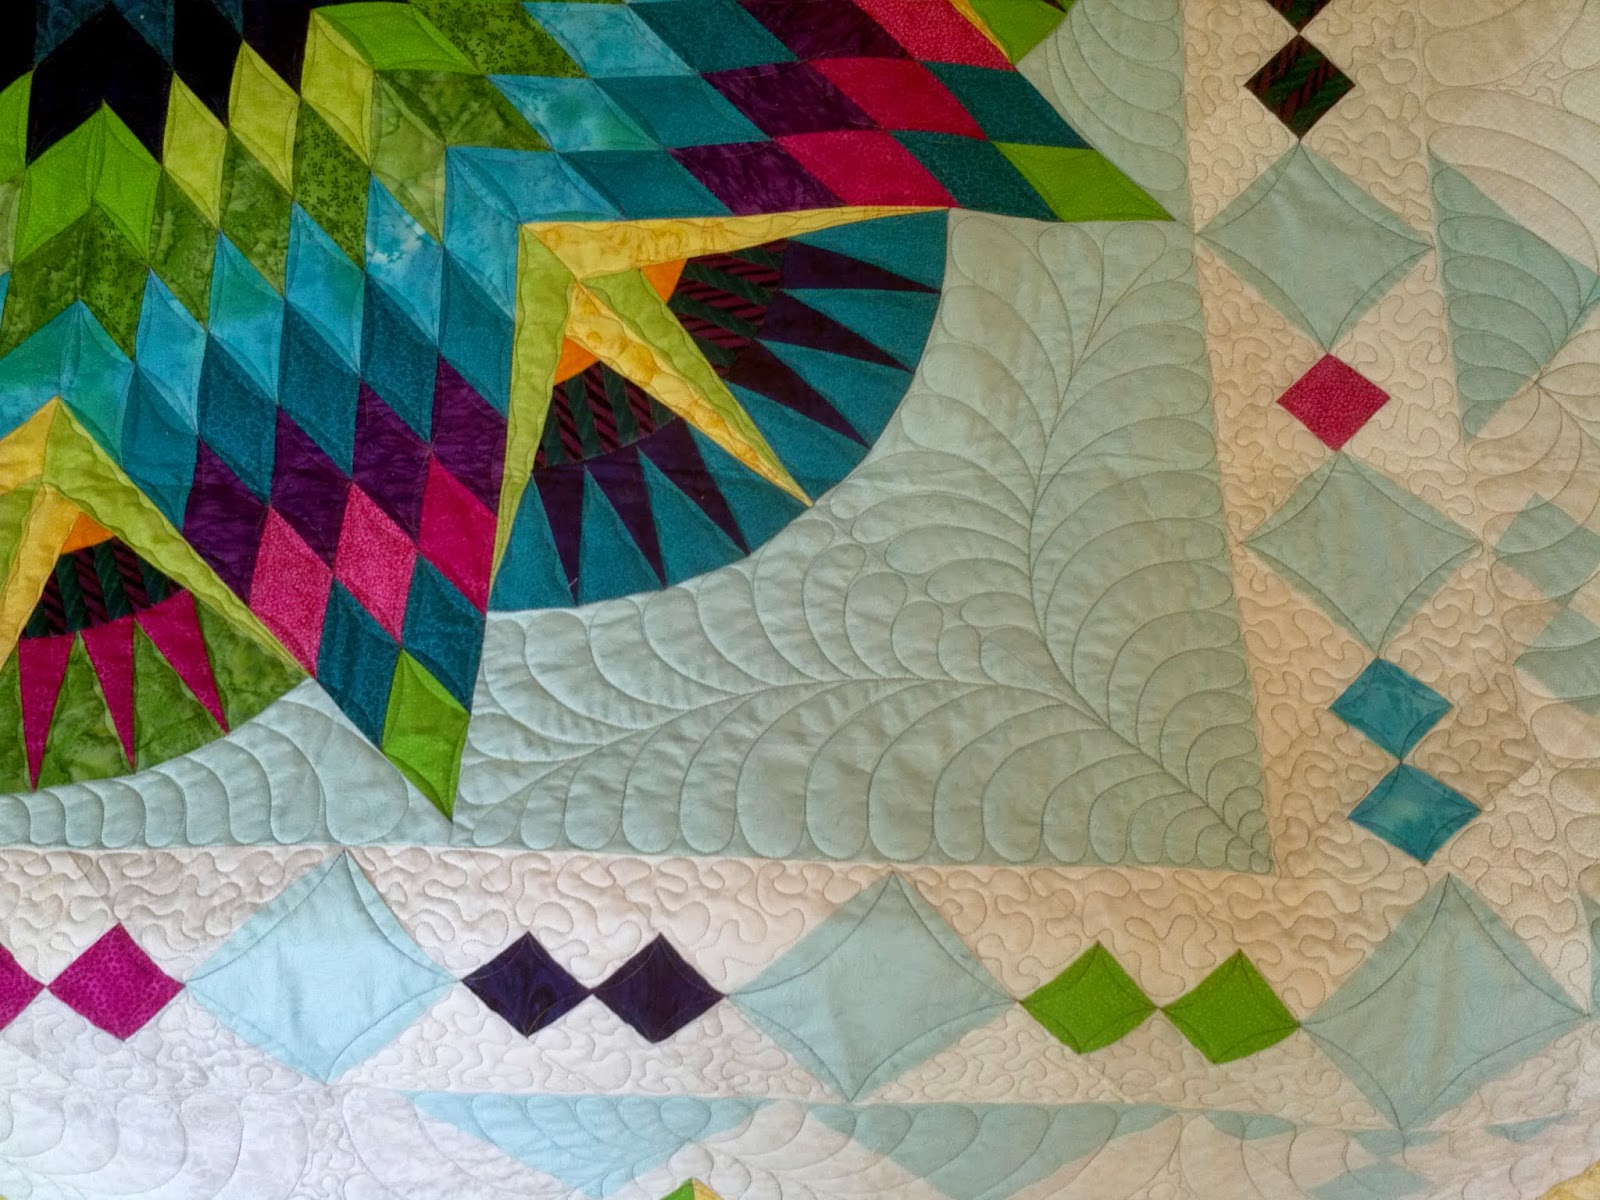 Quiltsmart Lone Star Quiltsmart Mariner's Compass